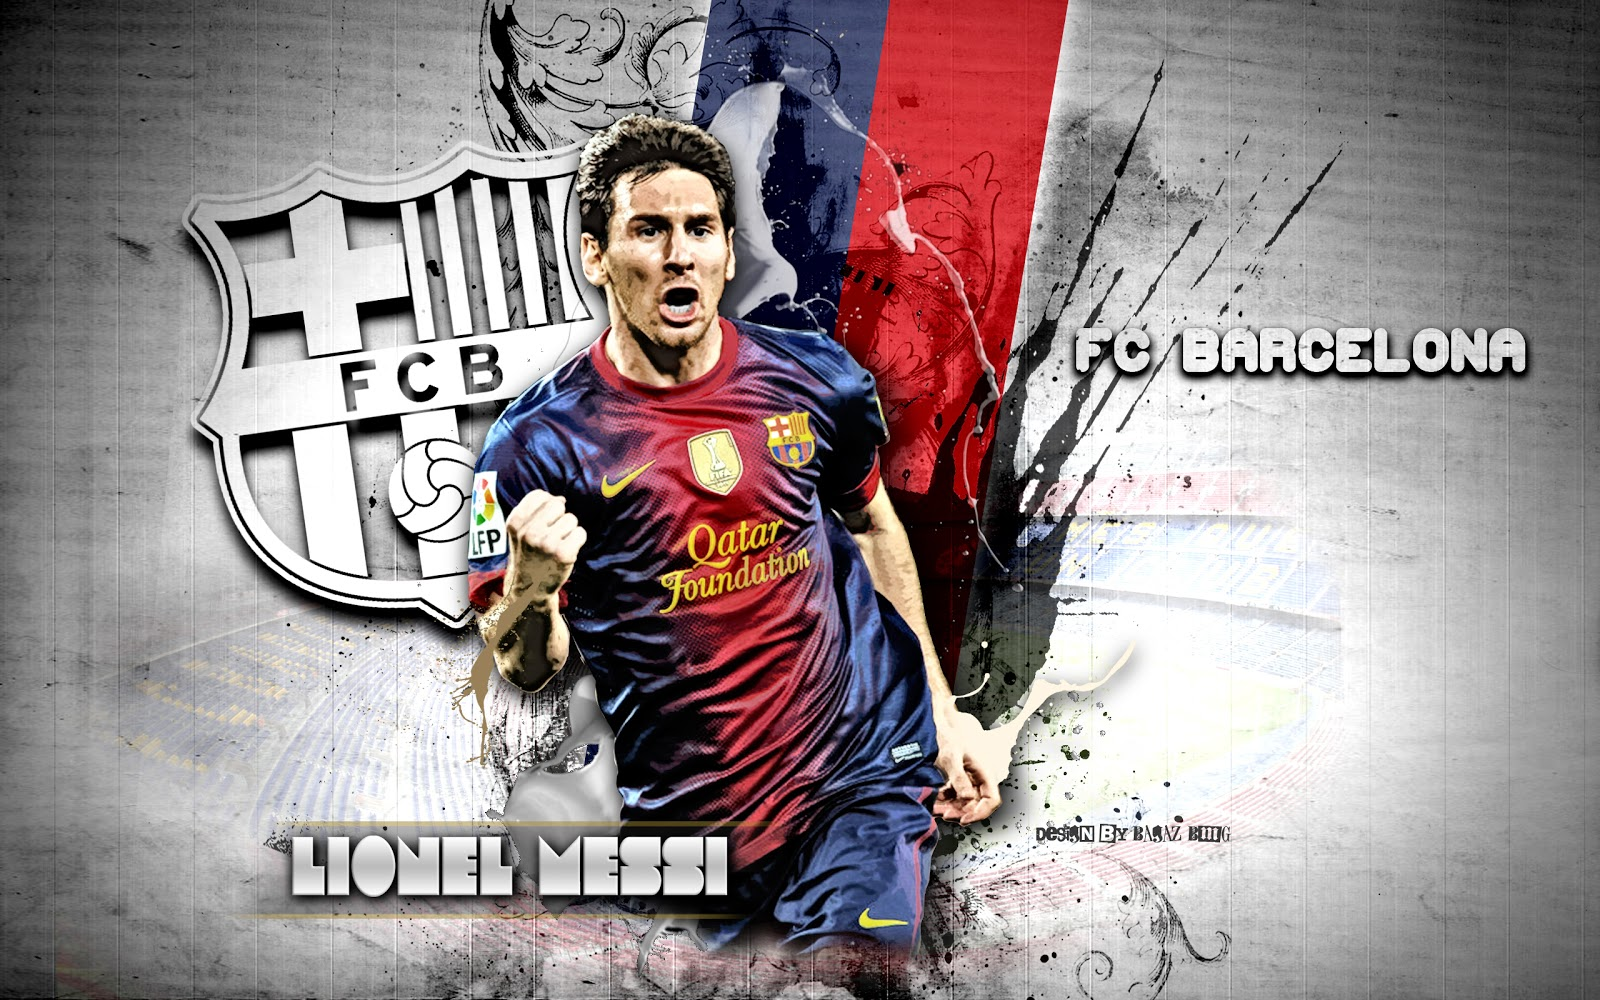 Lionel messi 2013 full hd wallpaper 2